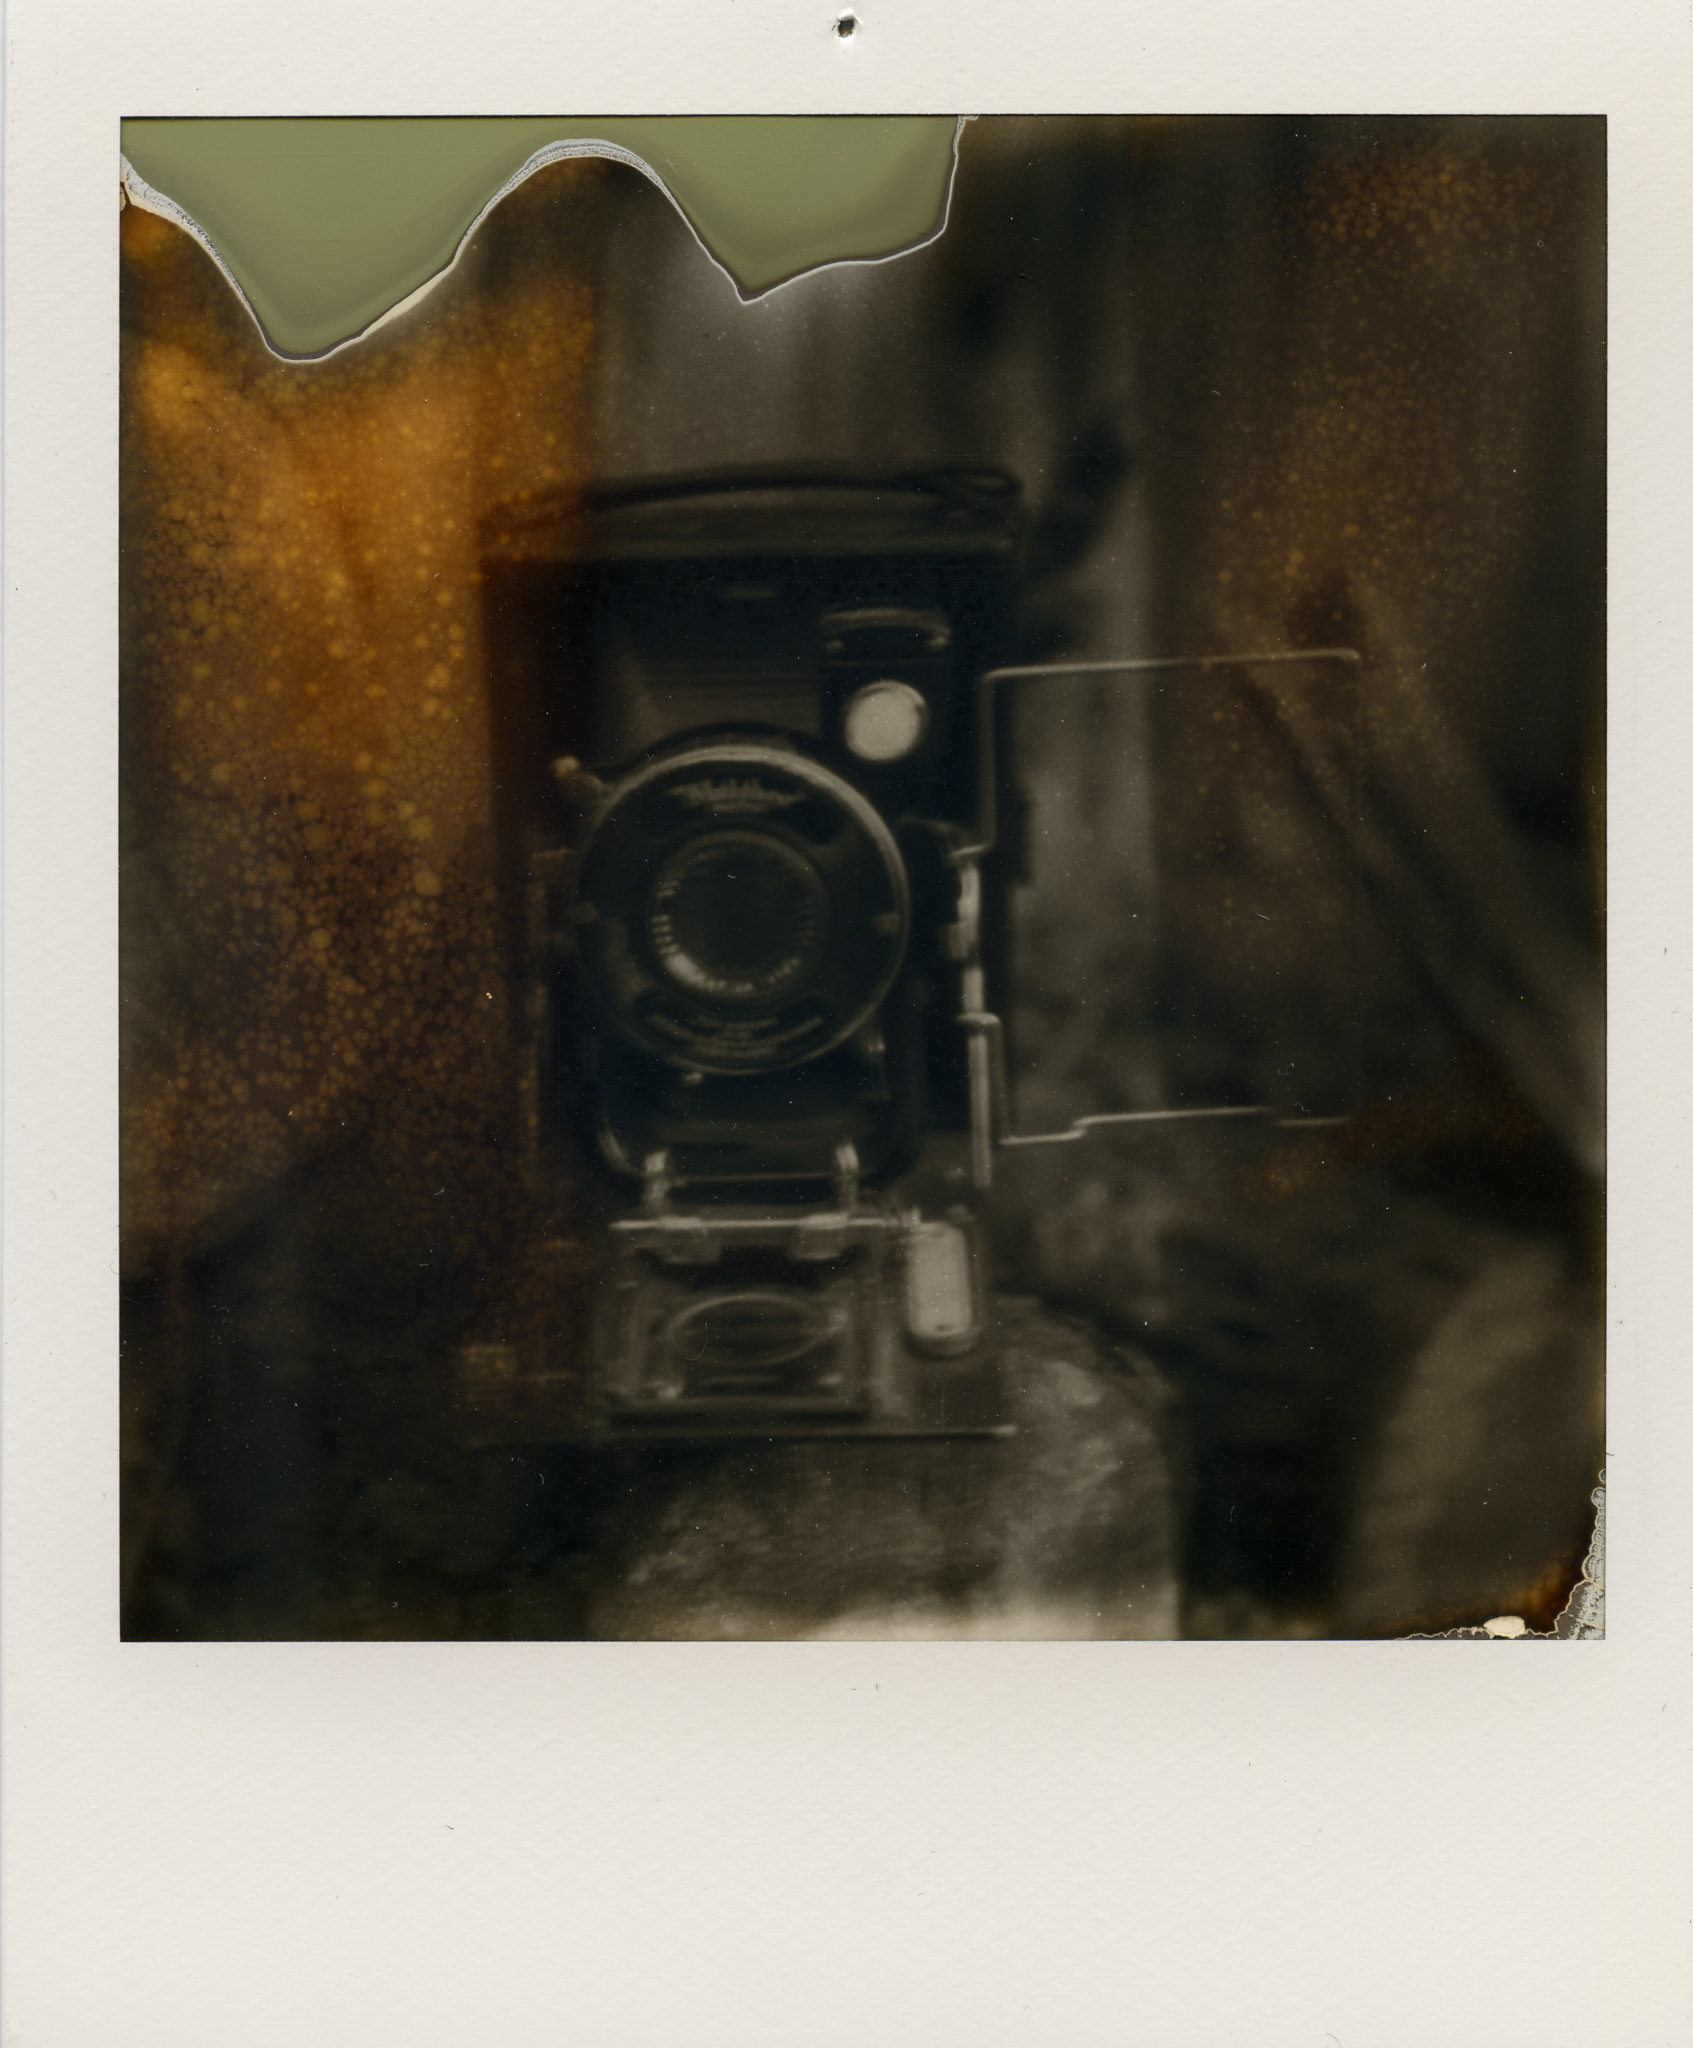 Camera: SX-70  Impossible Film Project BW film For SX-70 (Expired film, bought of eBay)